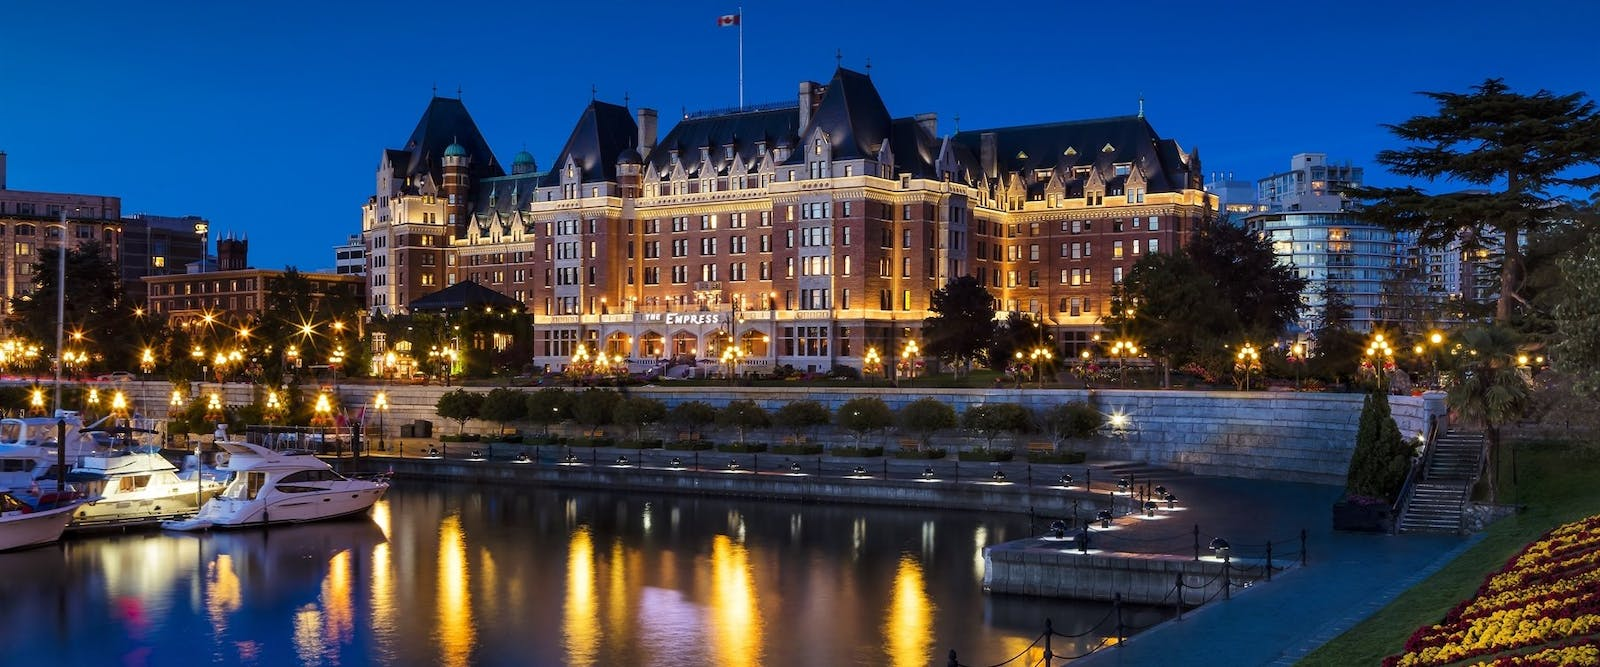 Exterior Night View of Fairmont Empress